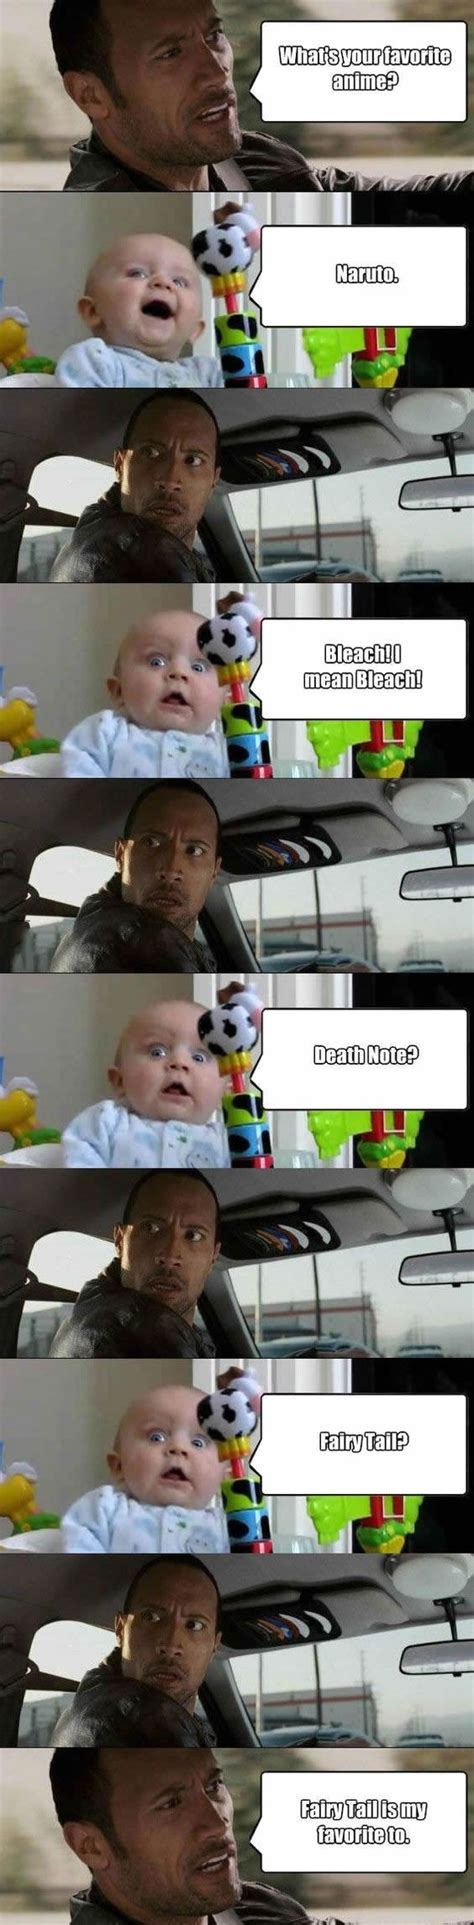 Dwayne Johnson Car Meme - the rock car meme justpost virtually entertaining